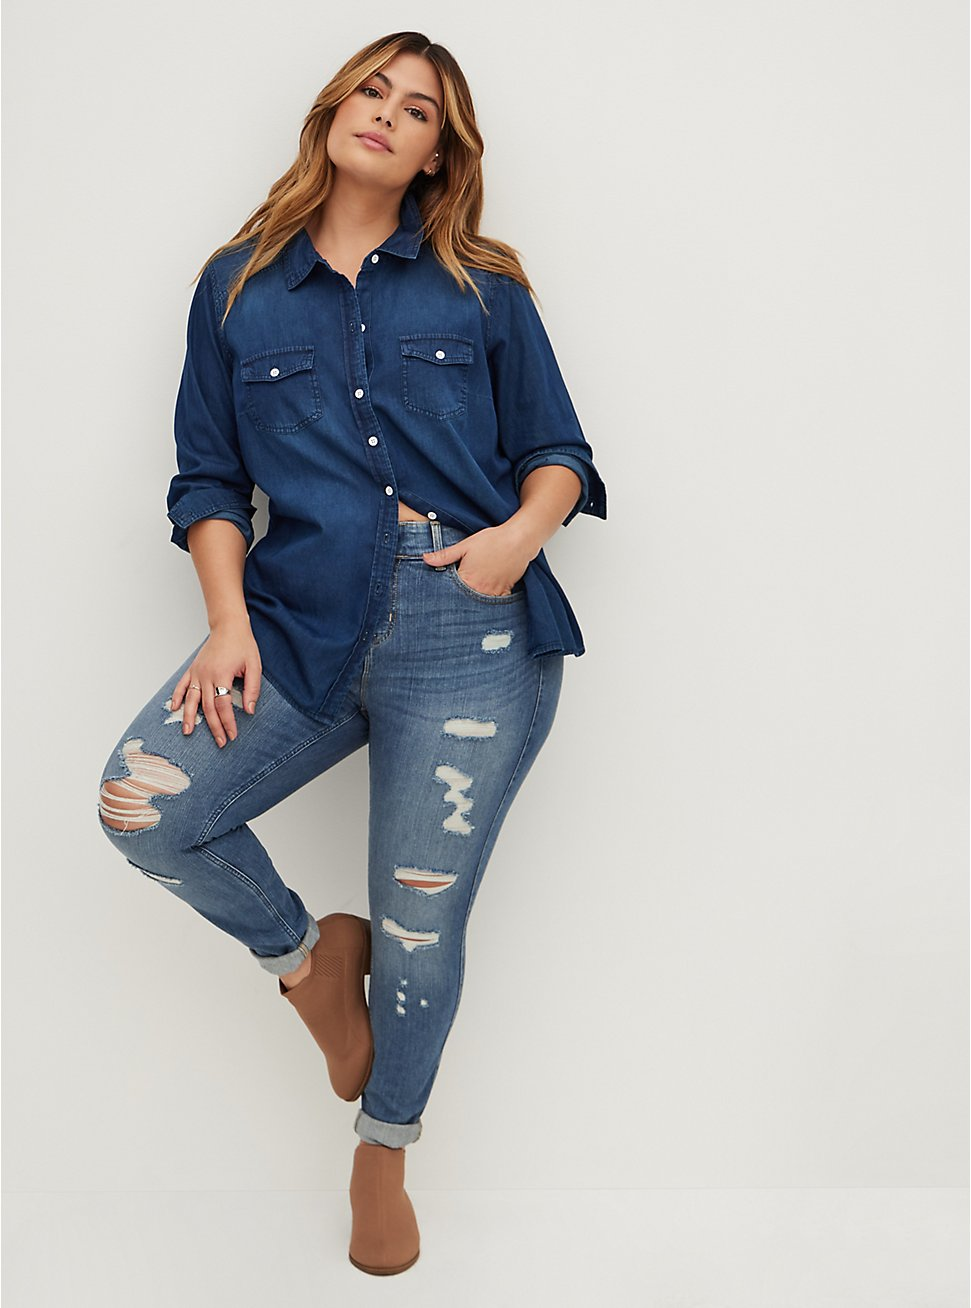 Taylor - Dark Denim Button-Up Shirt, , hi-res